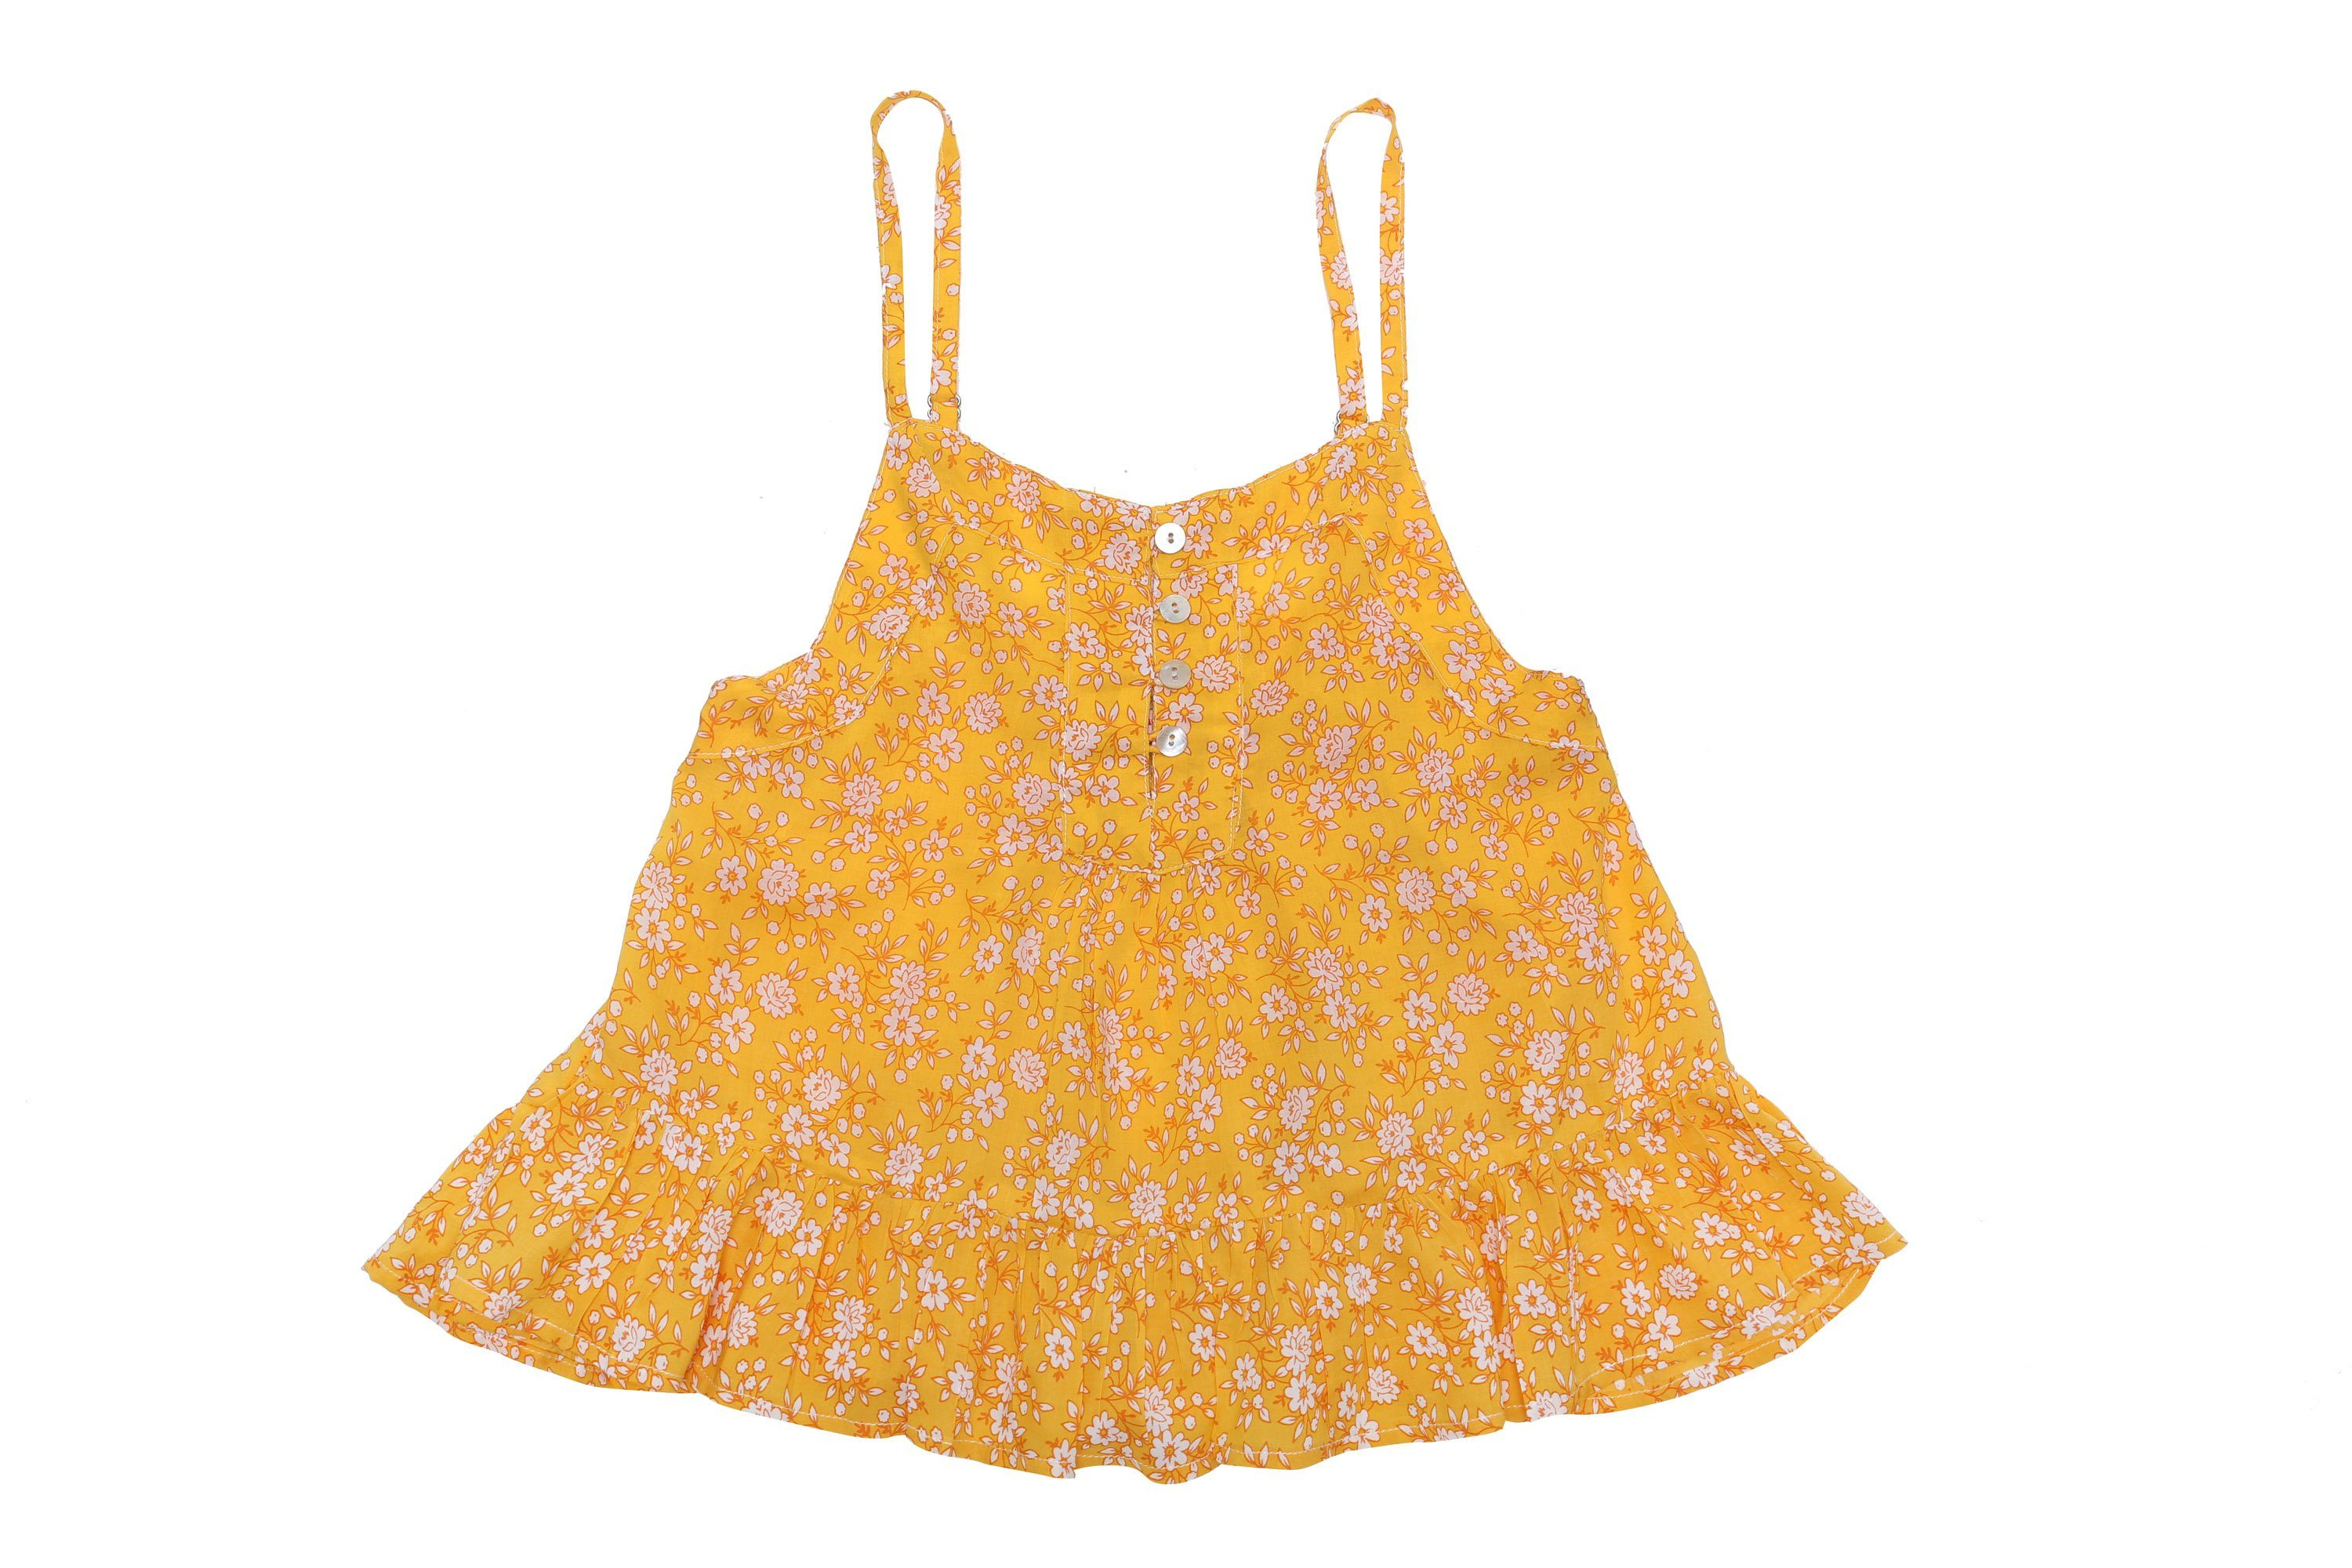 Coco and Ginger - Bijou Top - Yellow Whisper Girls Coco and Ginger